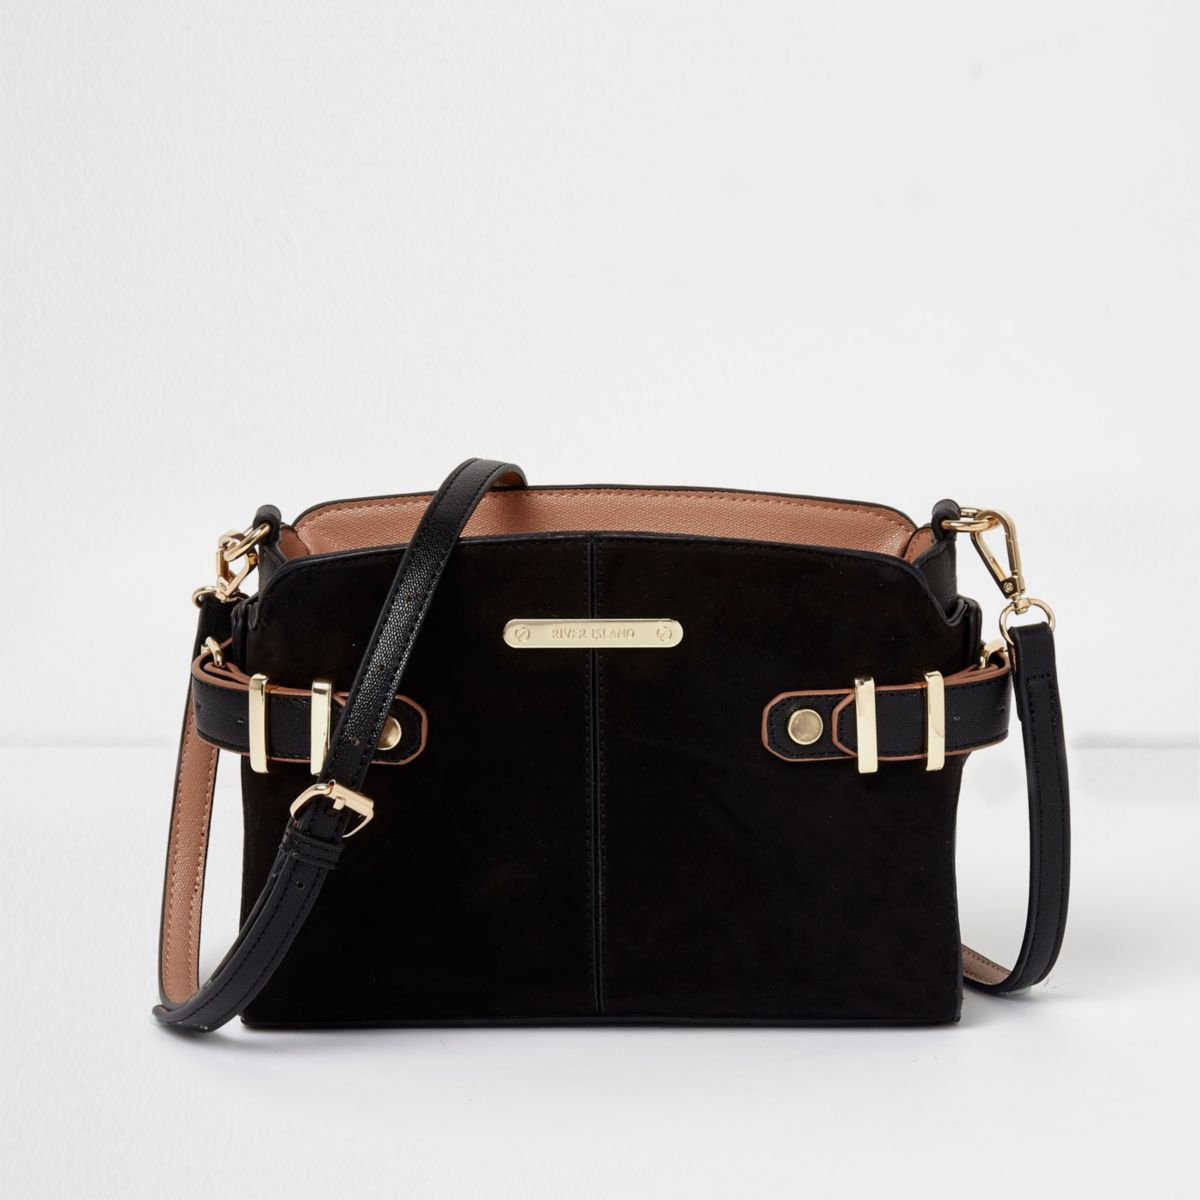 Black Tab Buckle Side Cross Body Bag by River Island